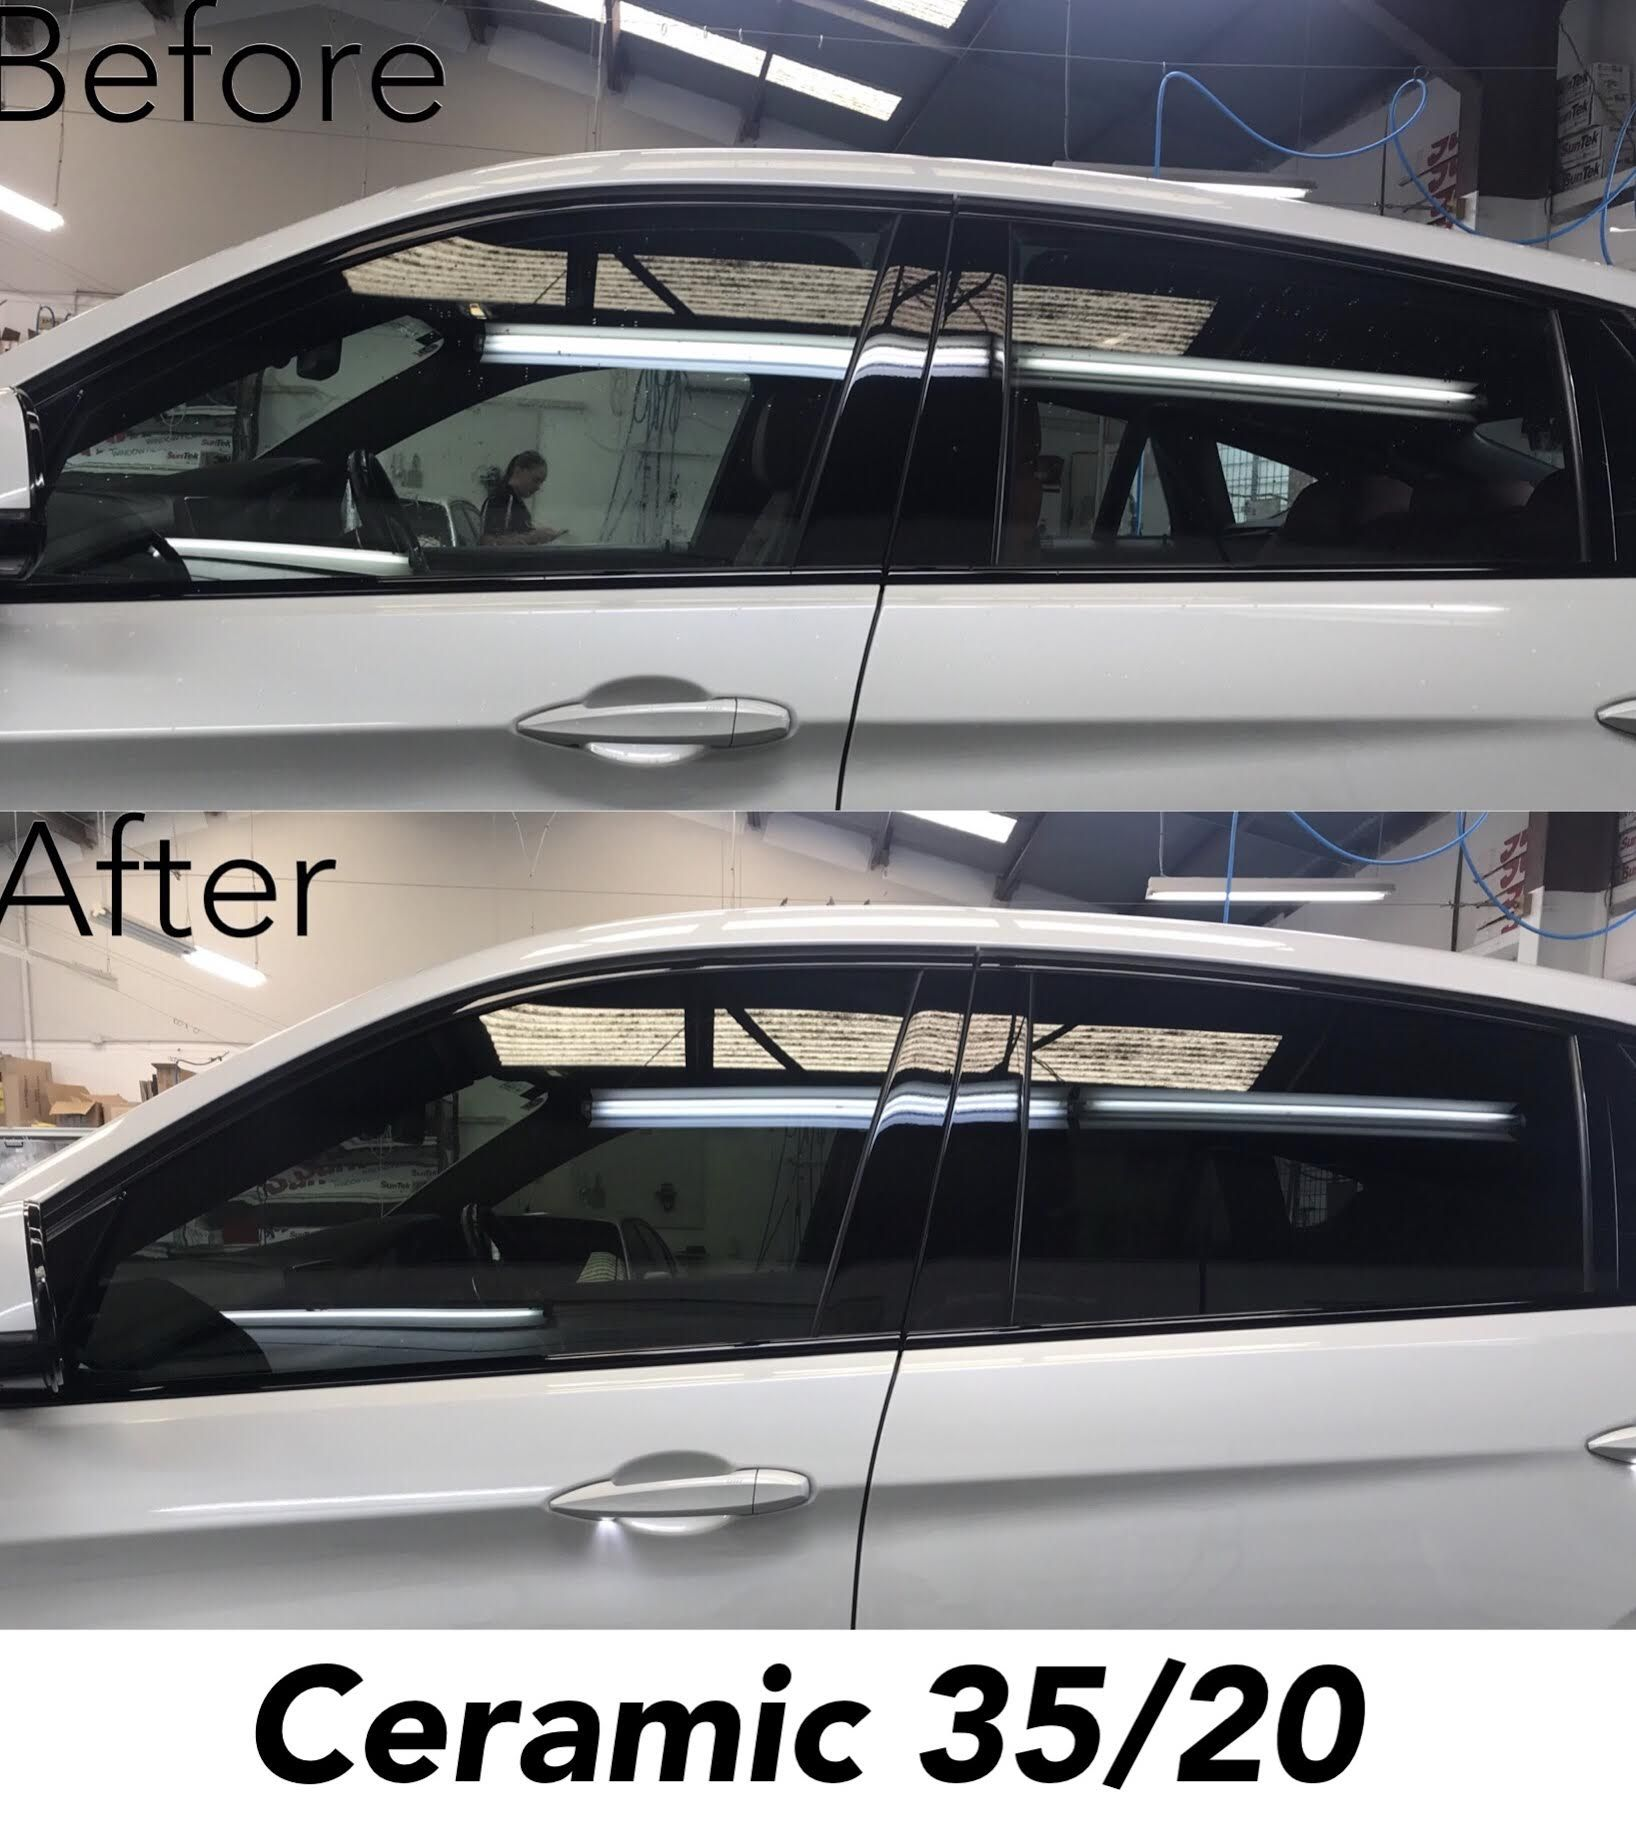 3m Ceramic Window Tint 35 20 On Bmw X6 Before And After Photos